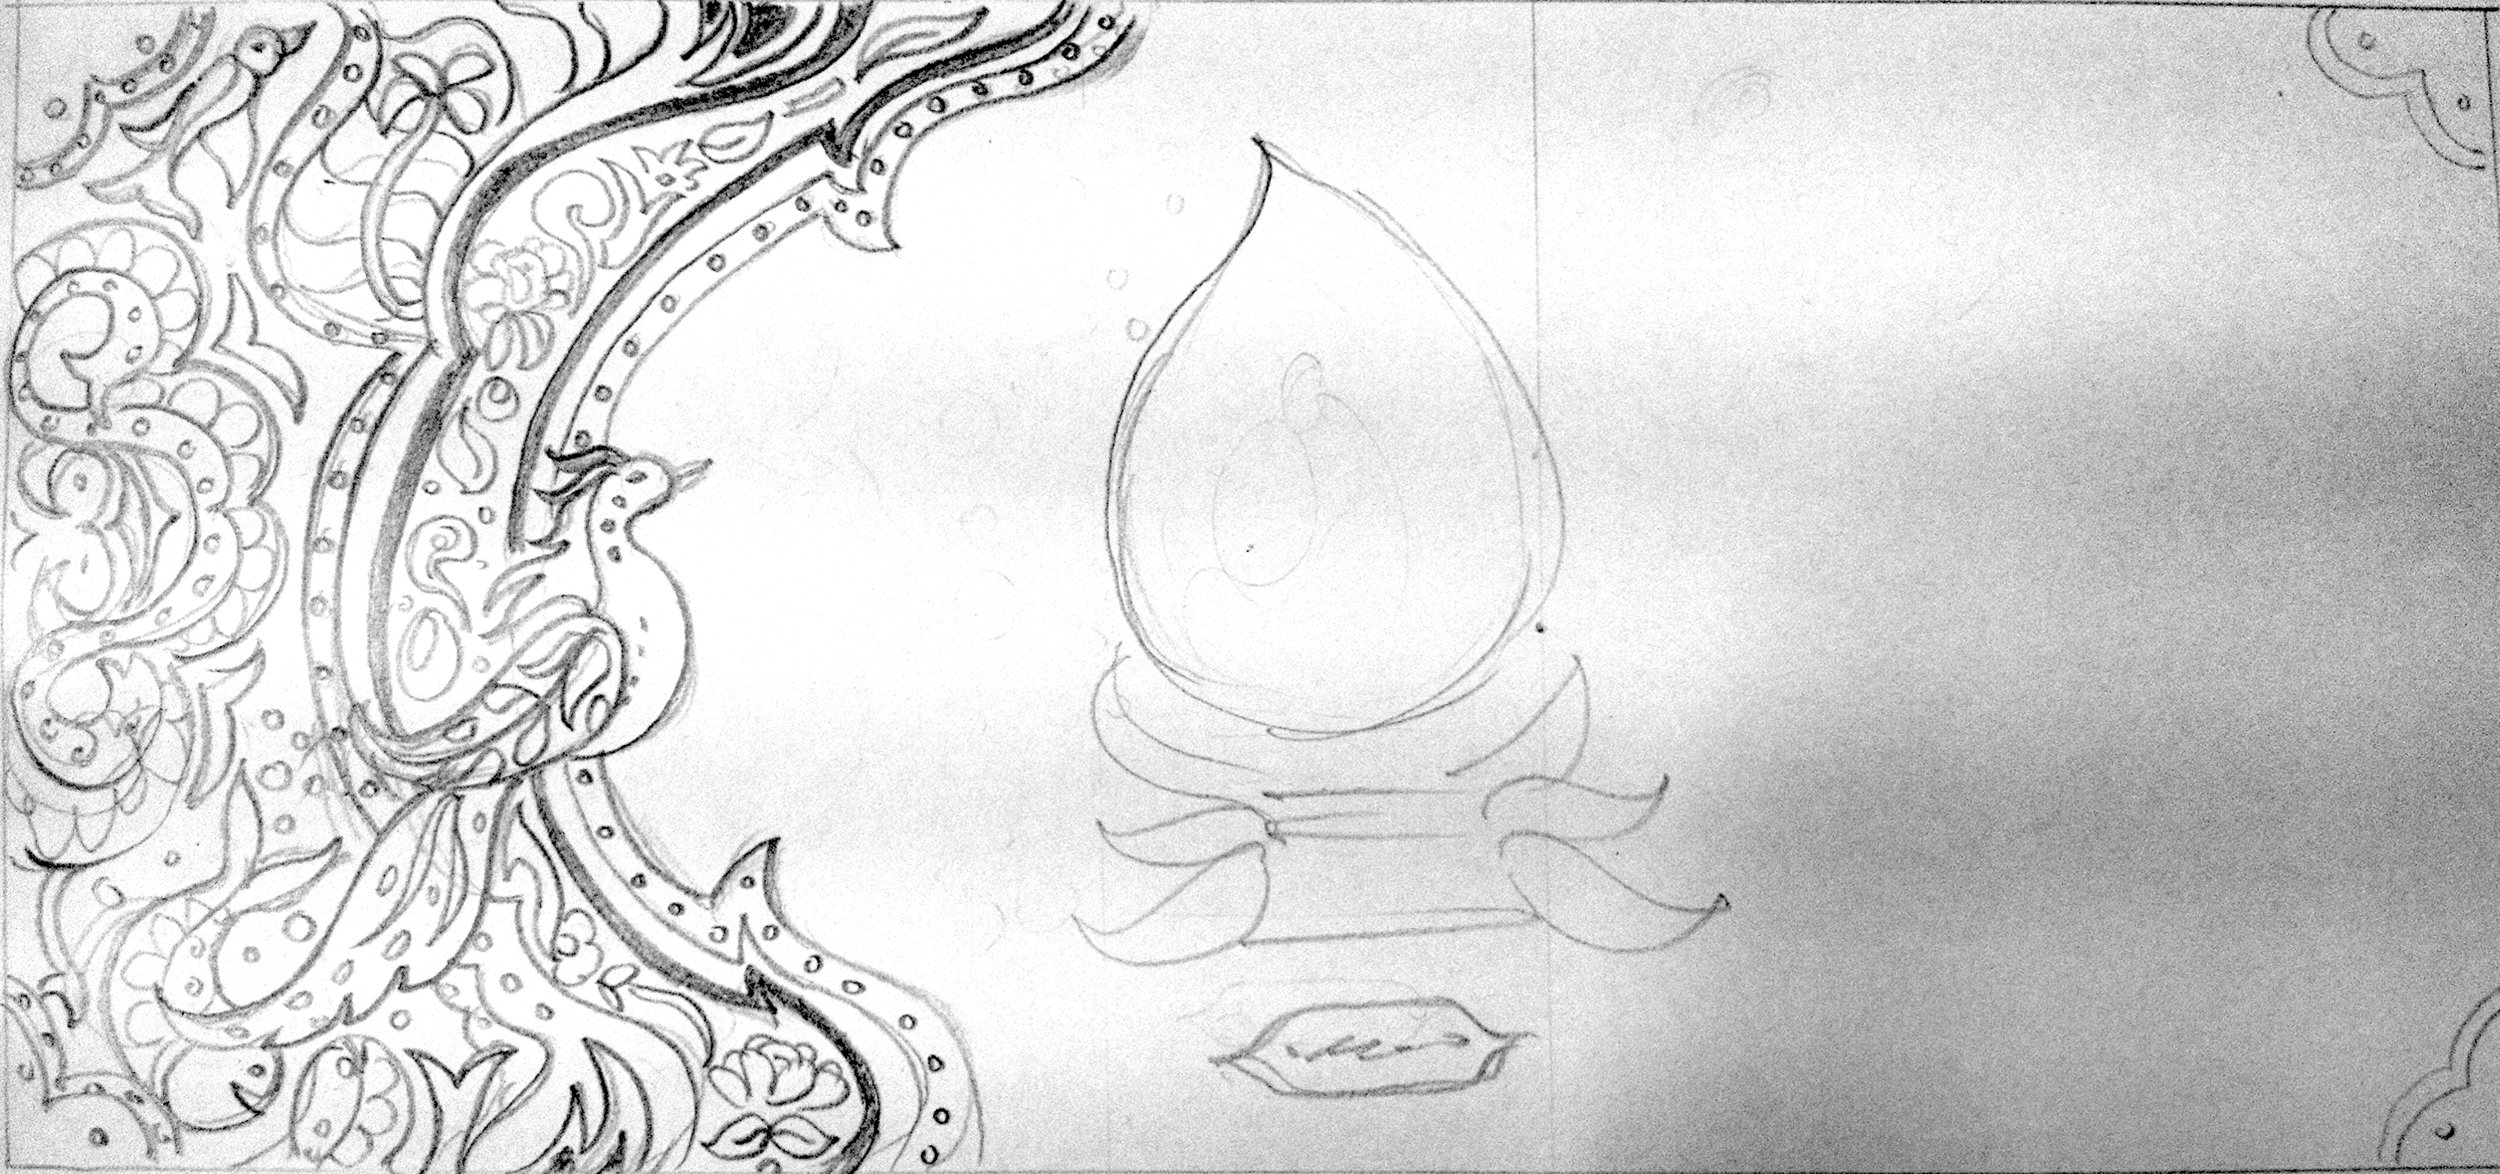 The detailed sketch of the cover page